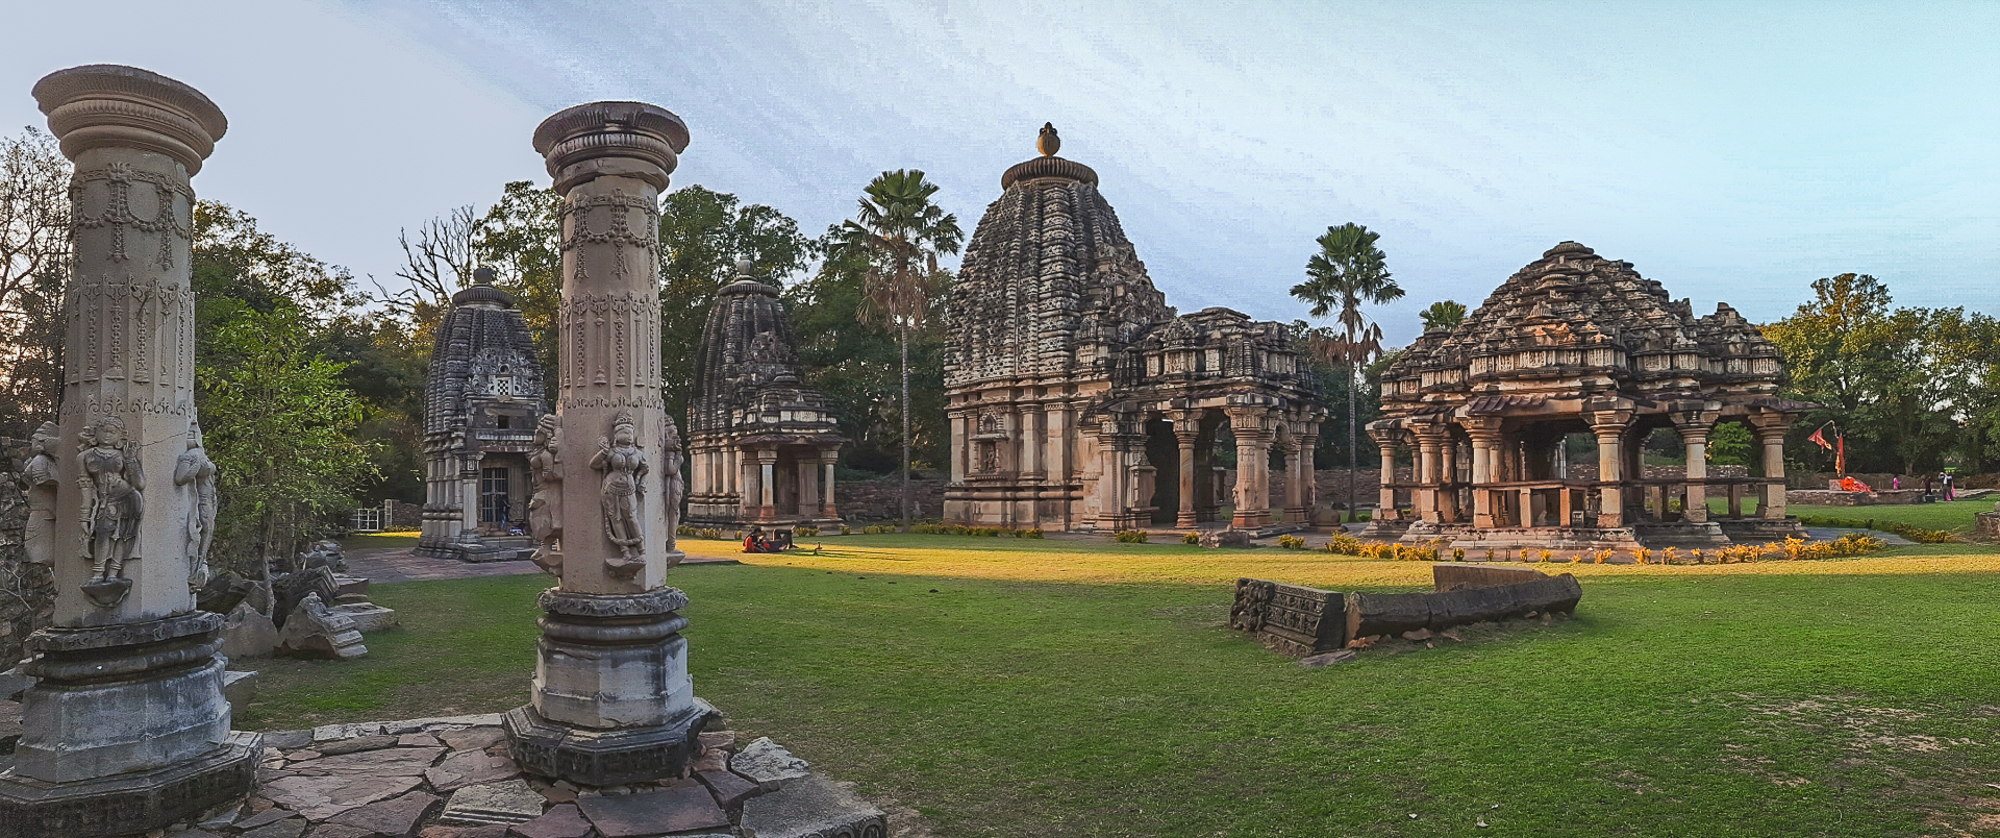 These temple ruins of Badoli are group of nine temples from the 10th Century A.D. This is one of the archeological sites listed under ASI.